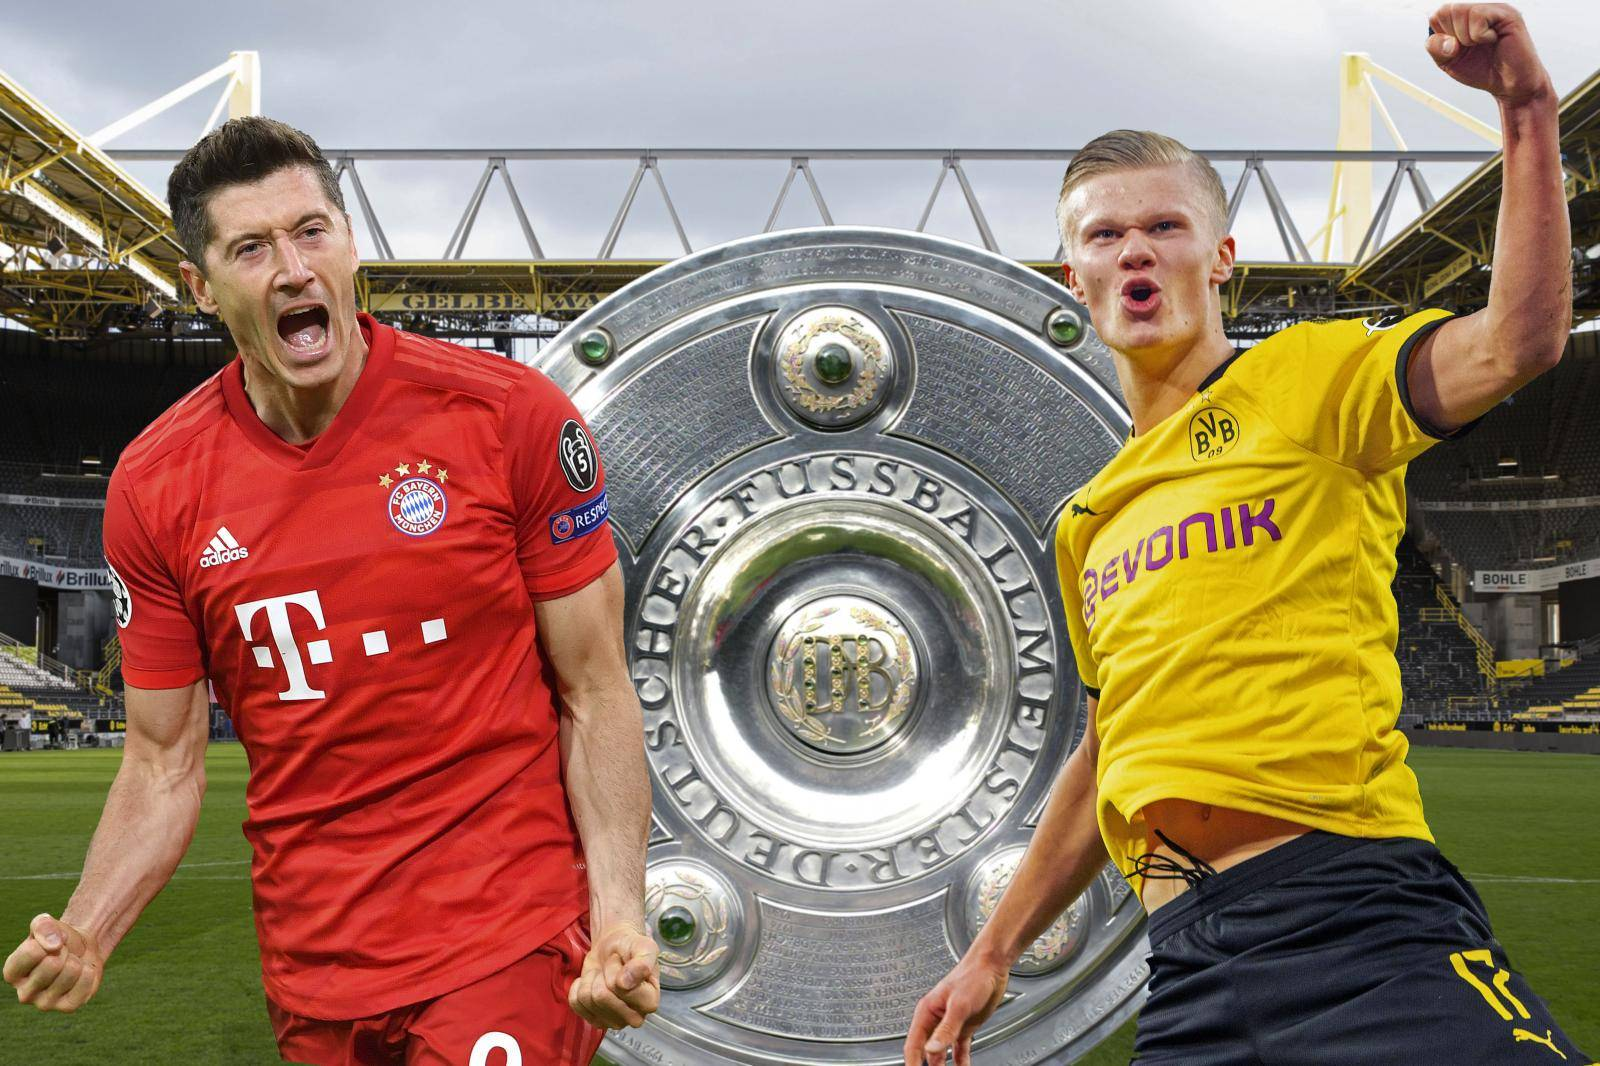 Preview Borussia Dortmund-FC Bayern Munich on May 26th, 2020.